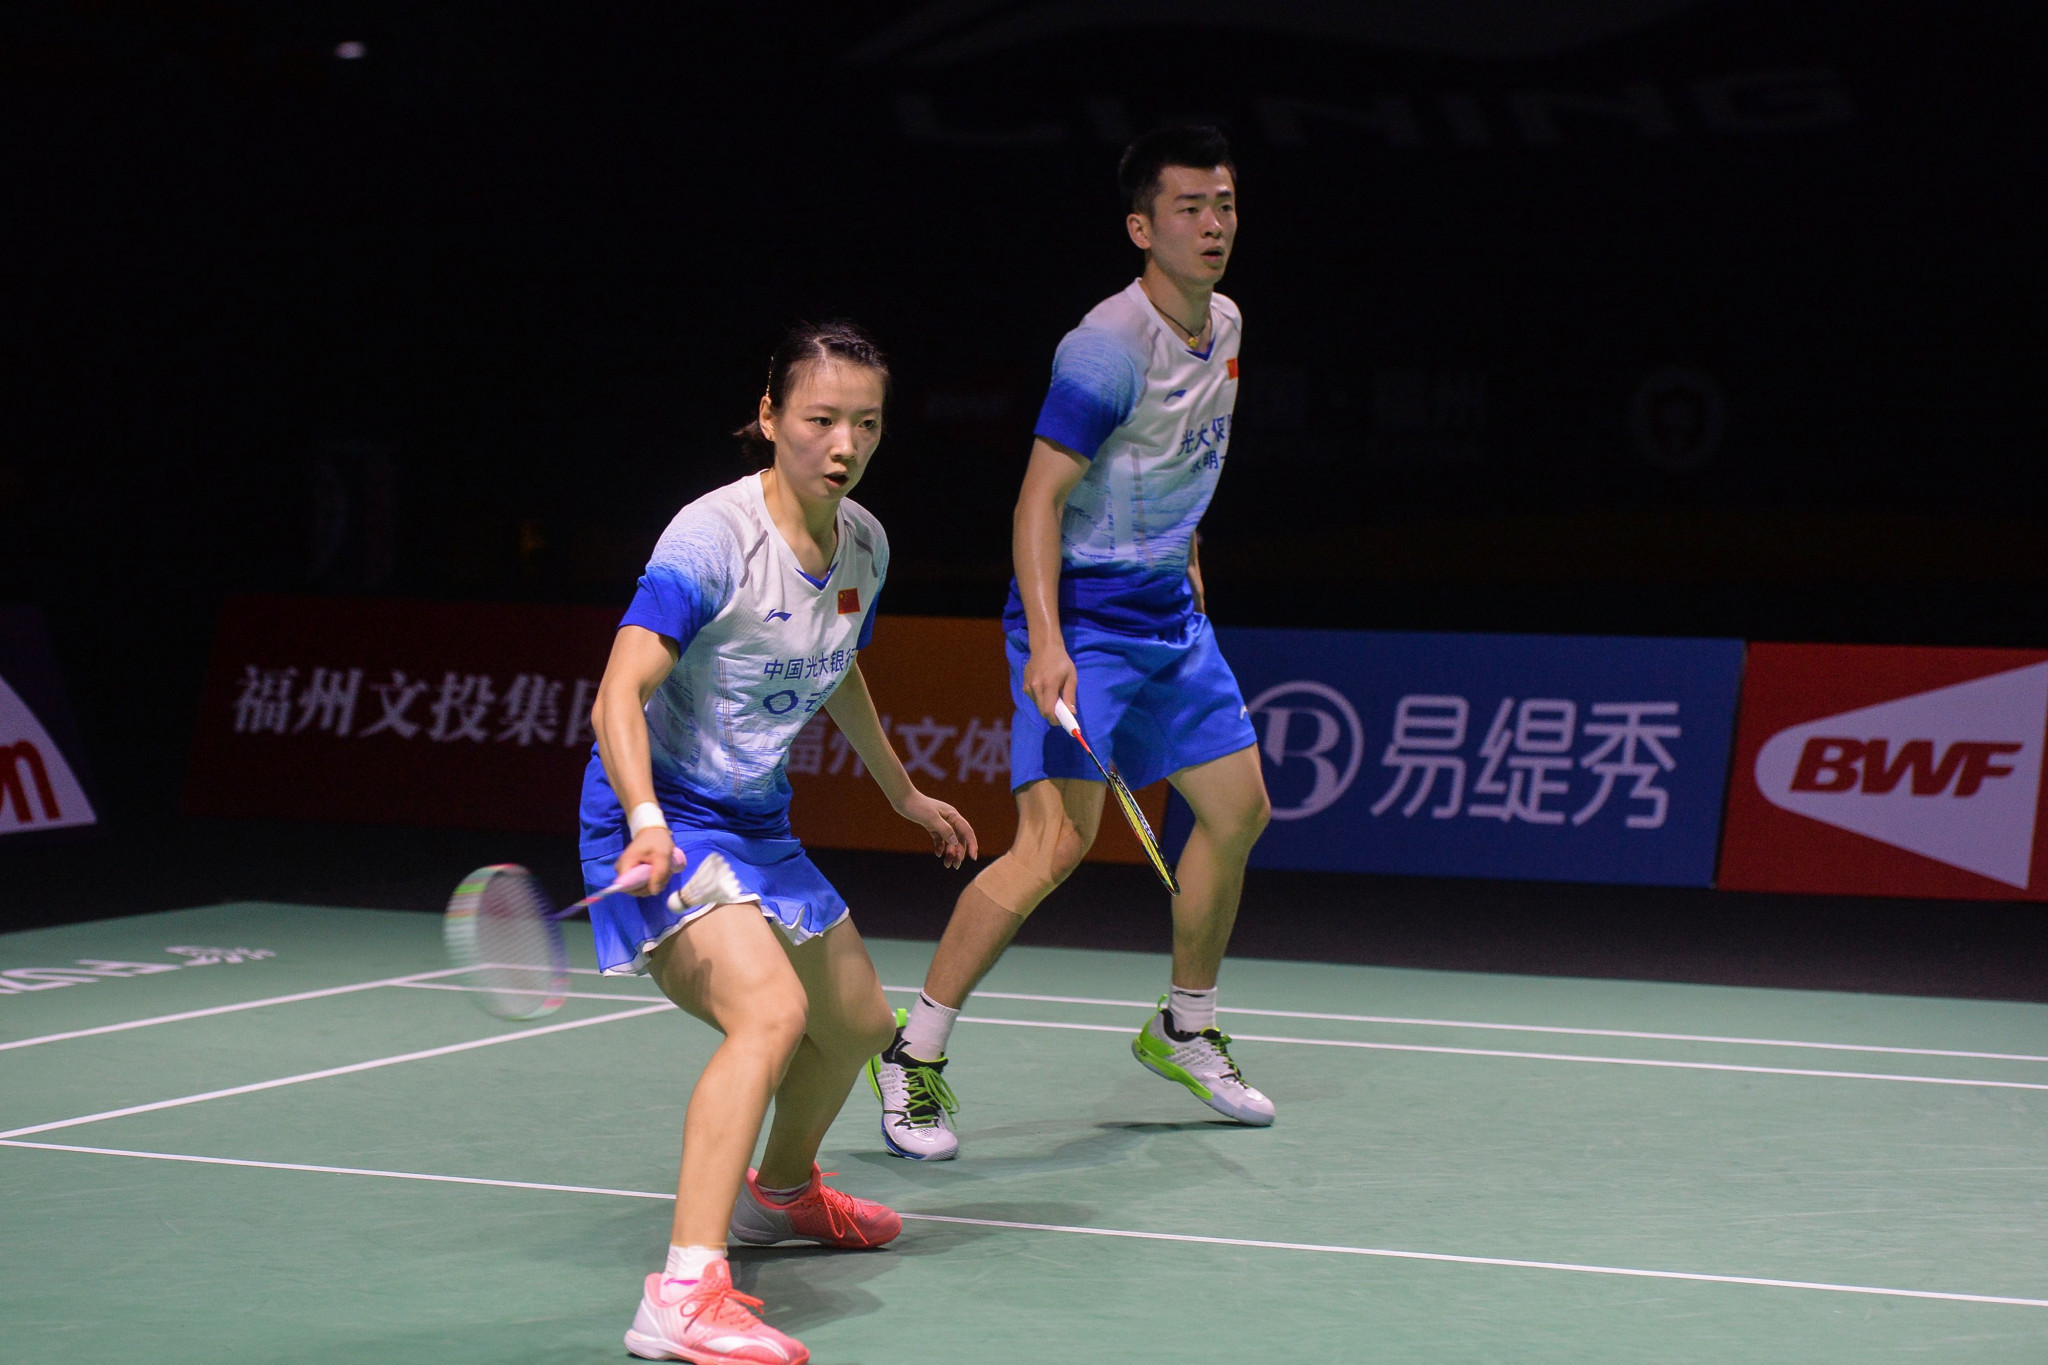 Mixed doubles world champions ease through at BWF Indonesia Masters